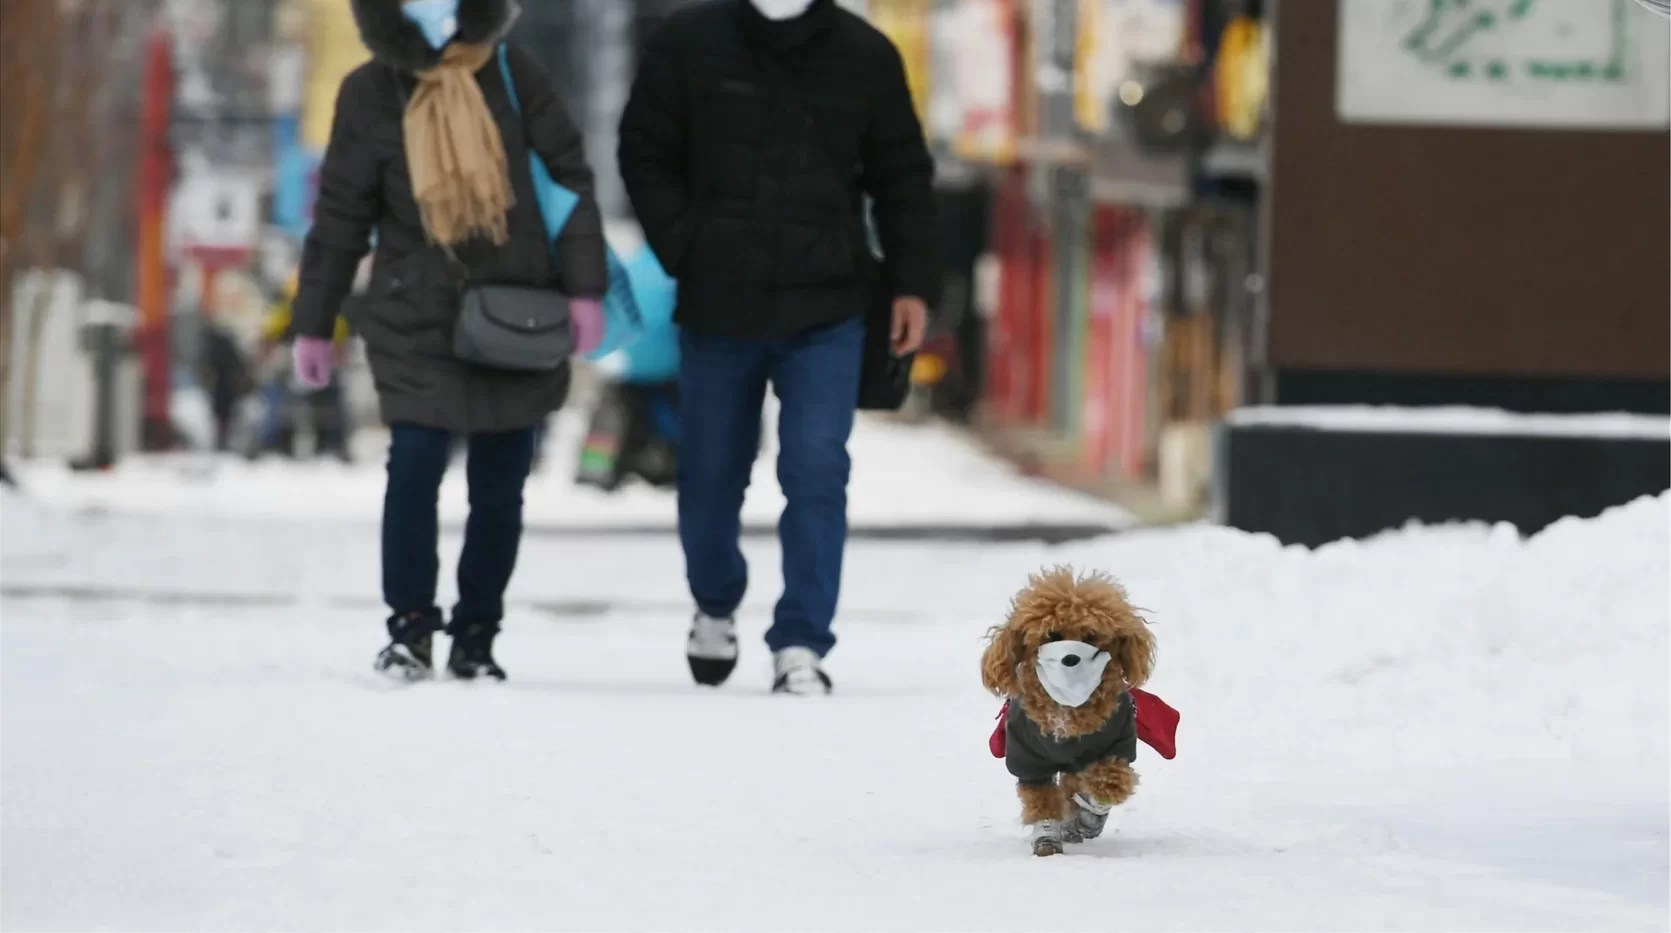 A dog wearing a face mask walks with its owner amid the novel coronavirus outbreak. Image: Getty